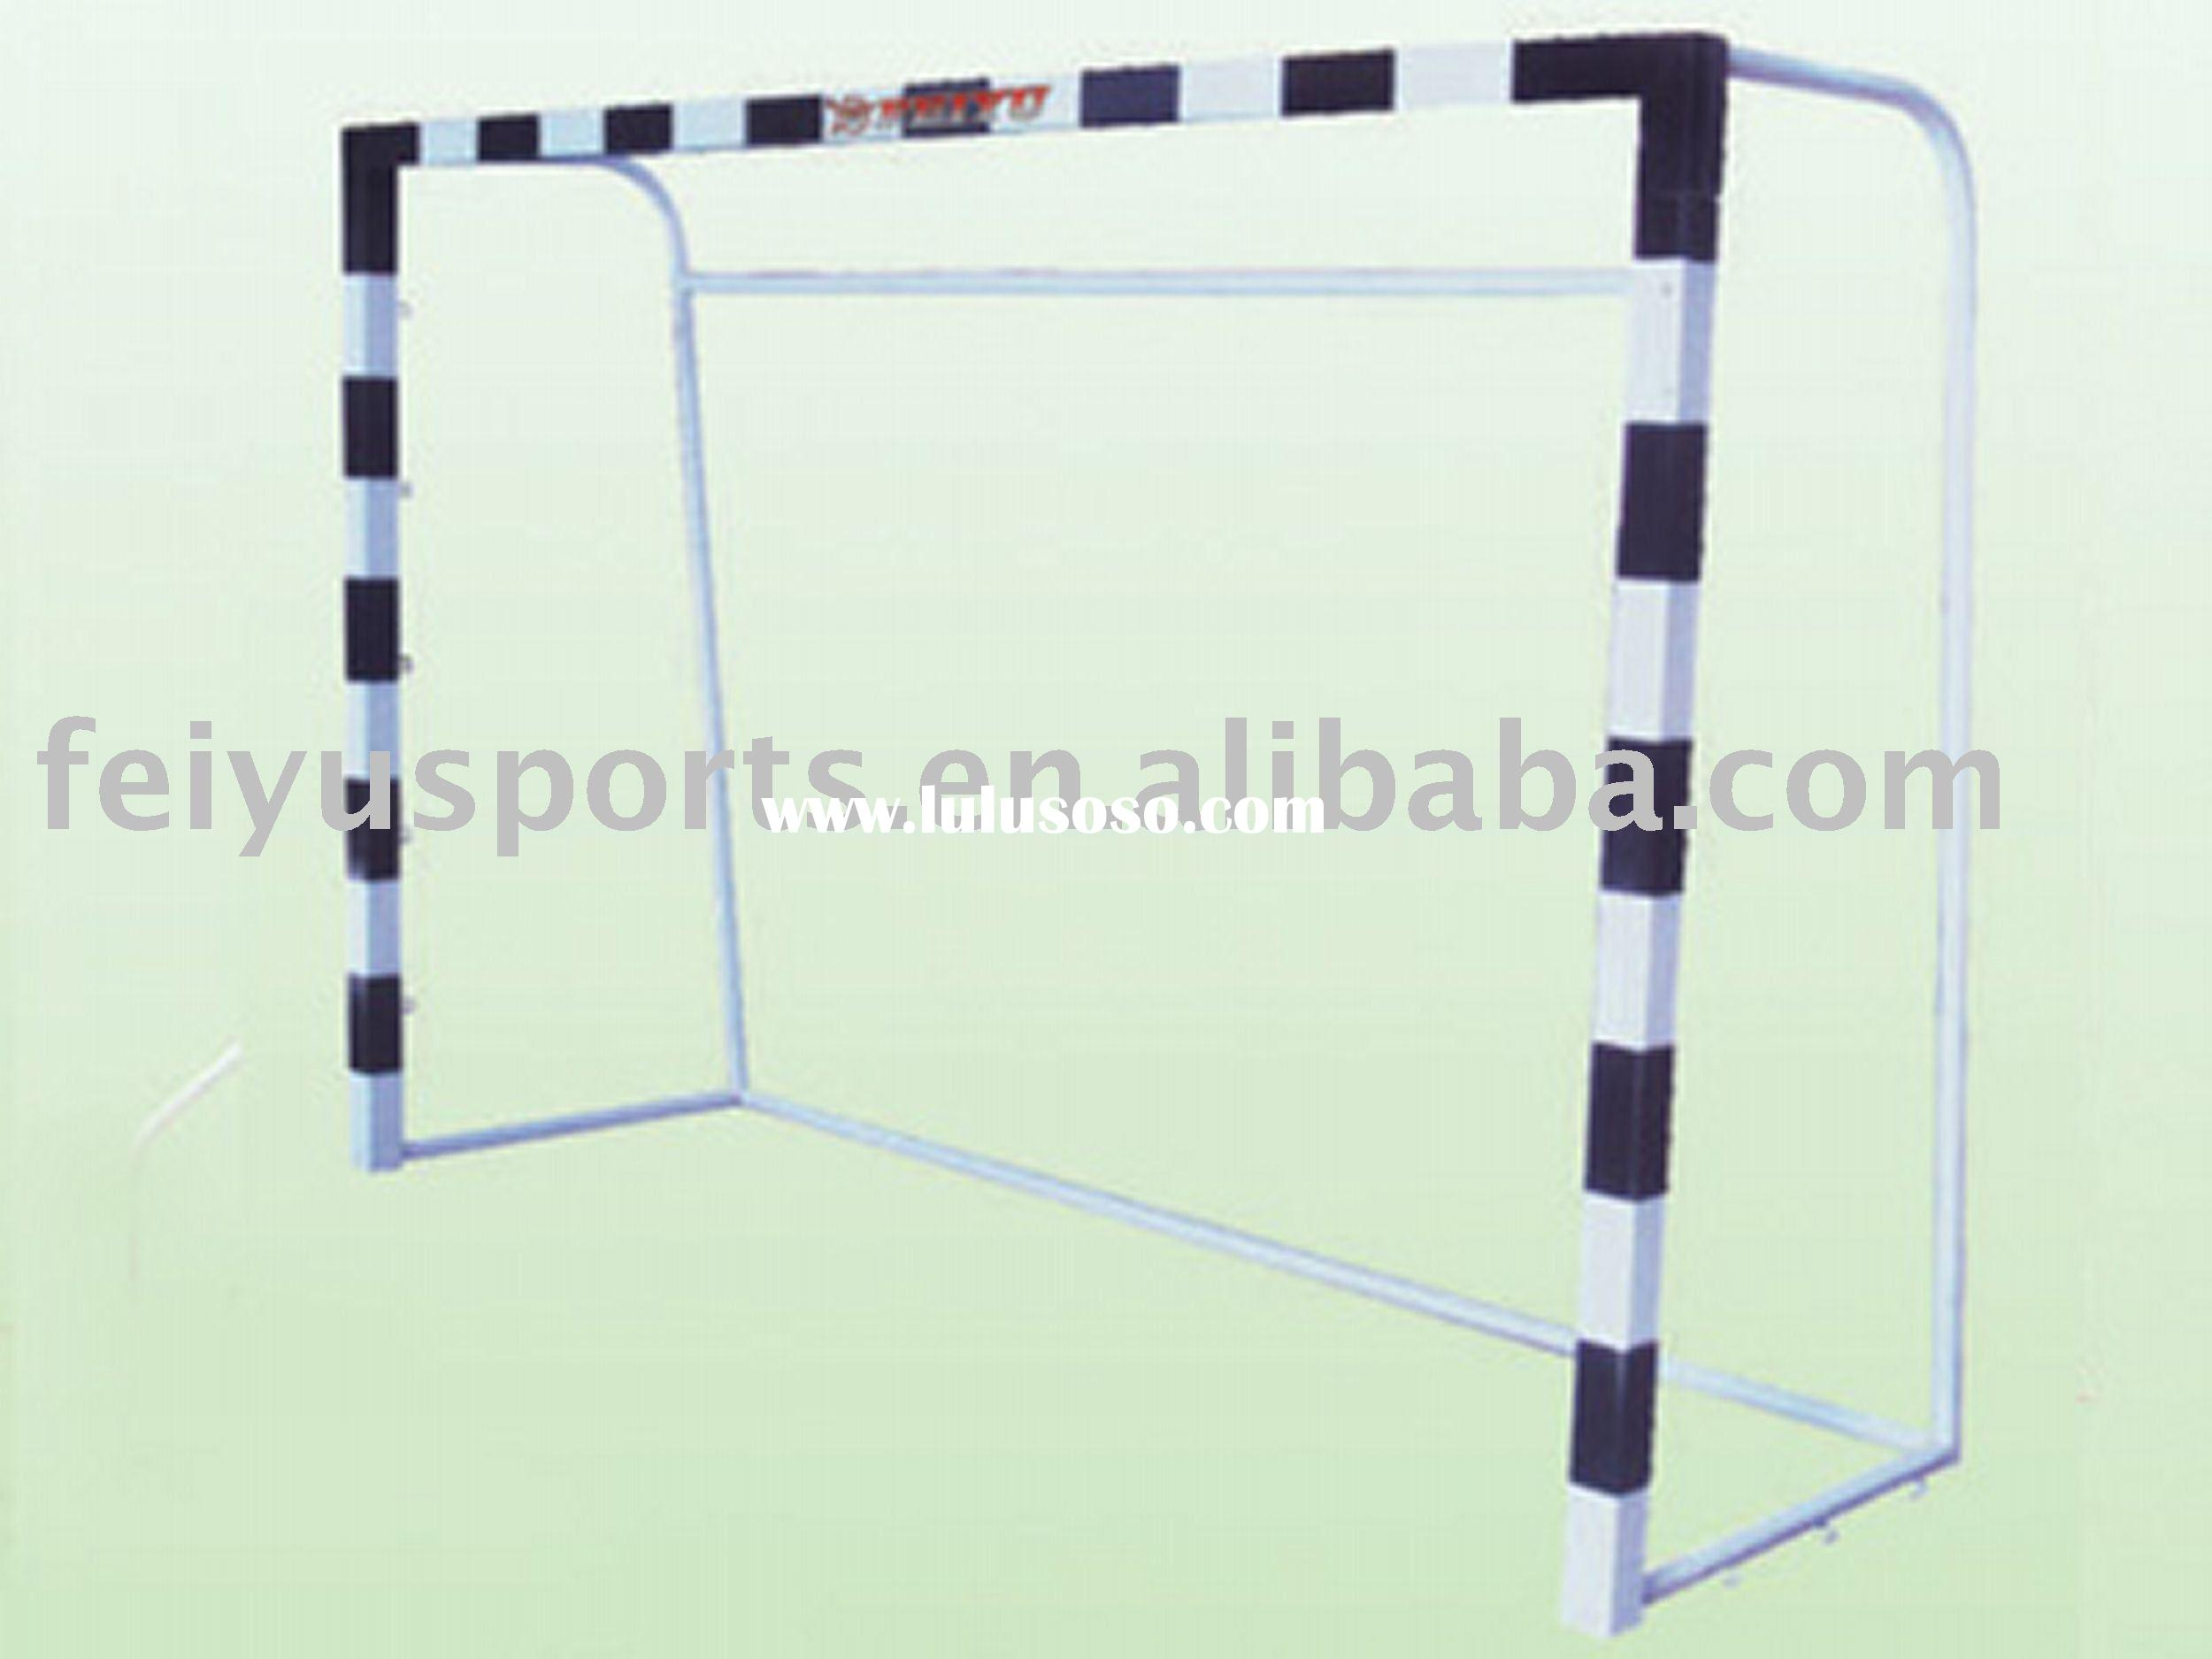 inflatable hockey net inflatable hockey net manufacturers. Black Bedroom Furniture Sets. Home Design Ideas